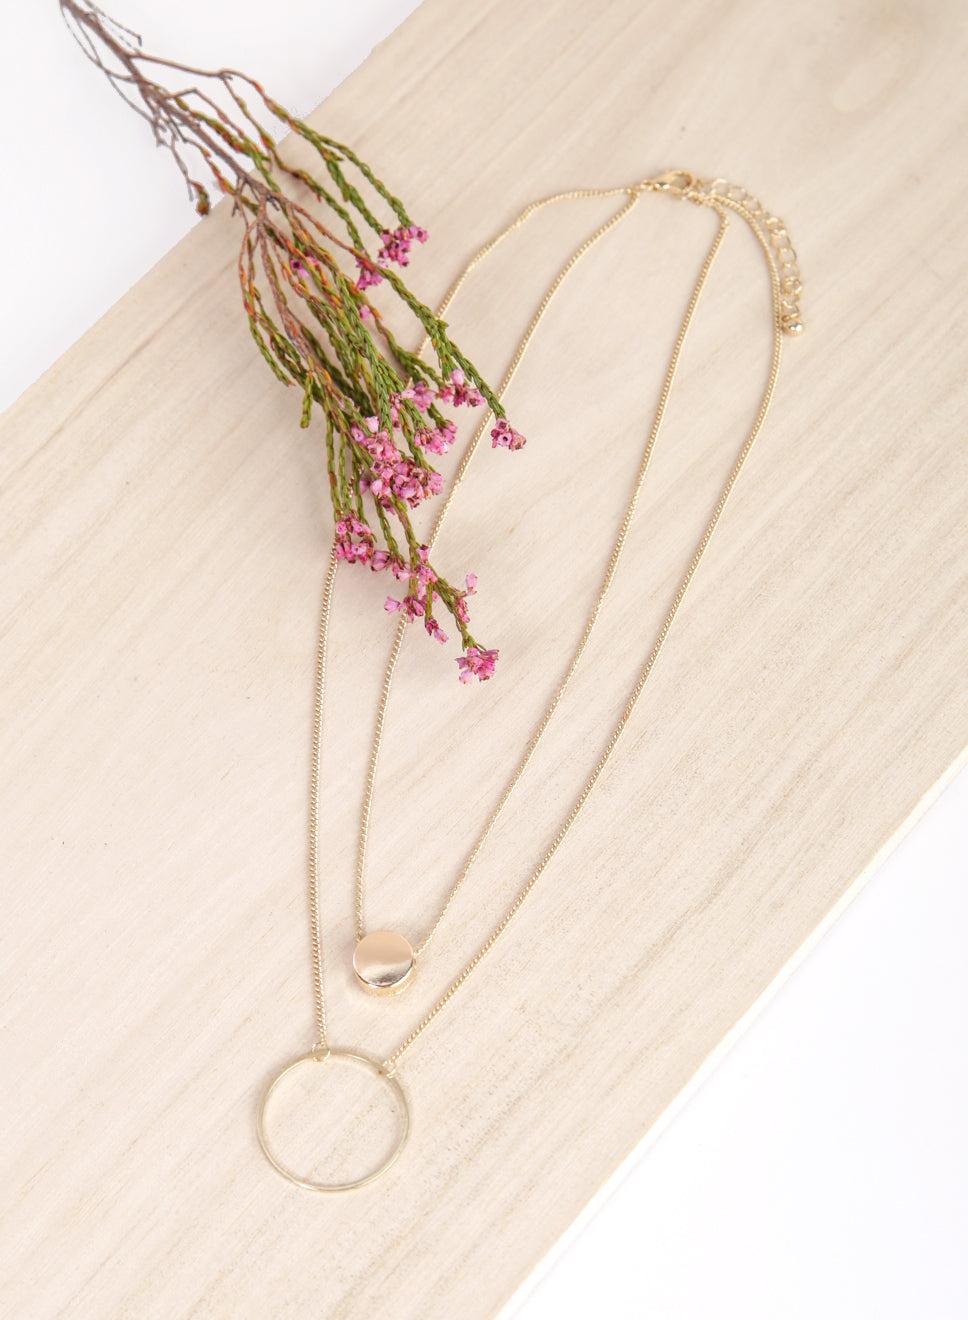 ALMA Duo Circular Necklace (Gold) at $ 19.50 only sold at And Well Dressed Online Fashion Store Singapore